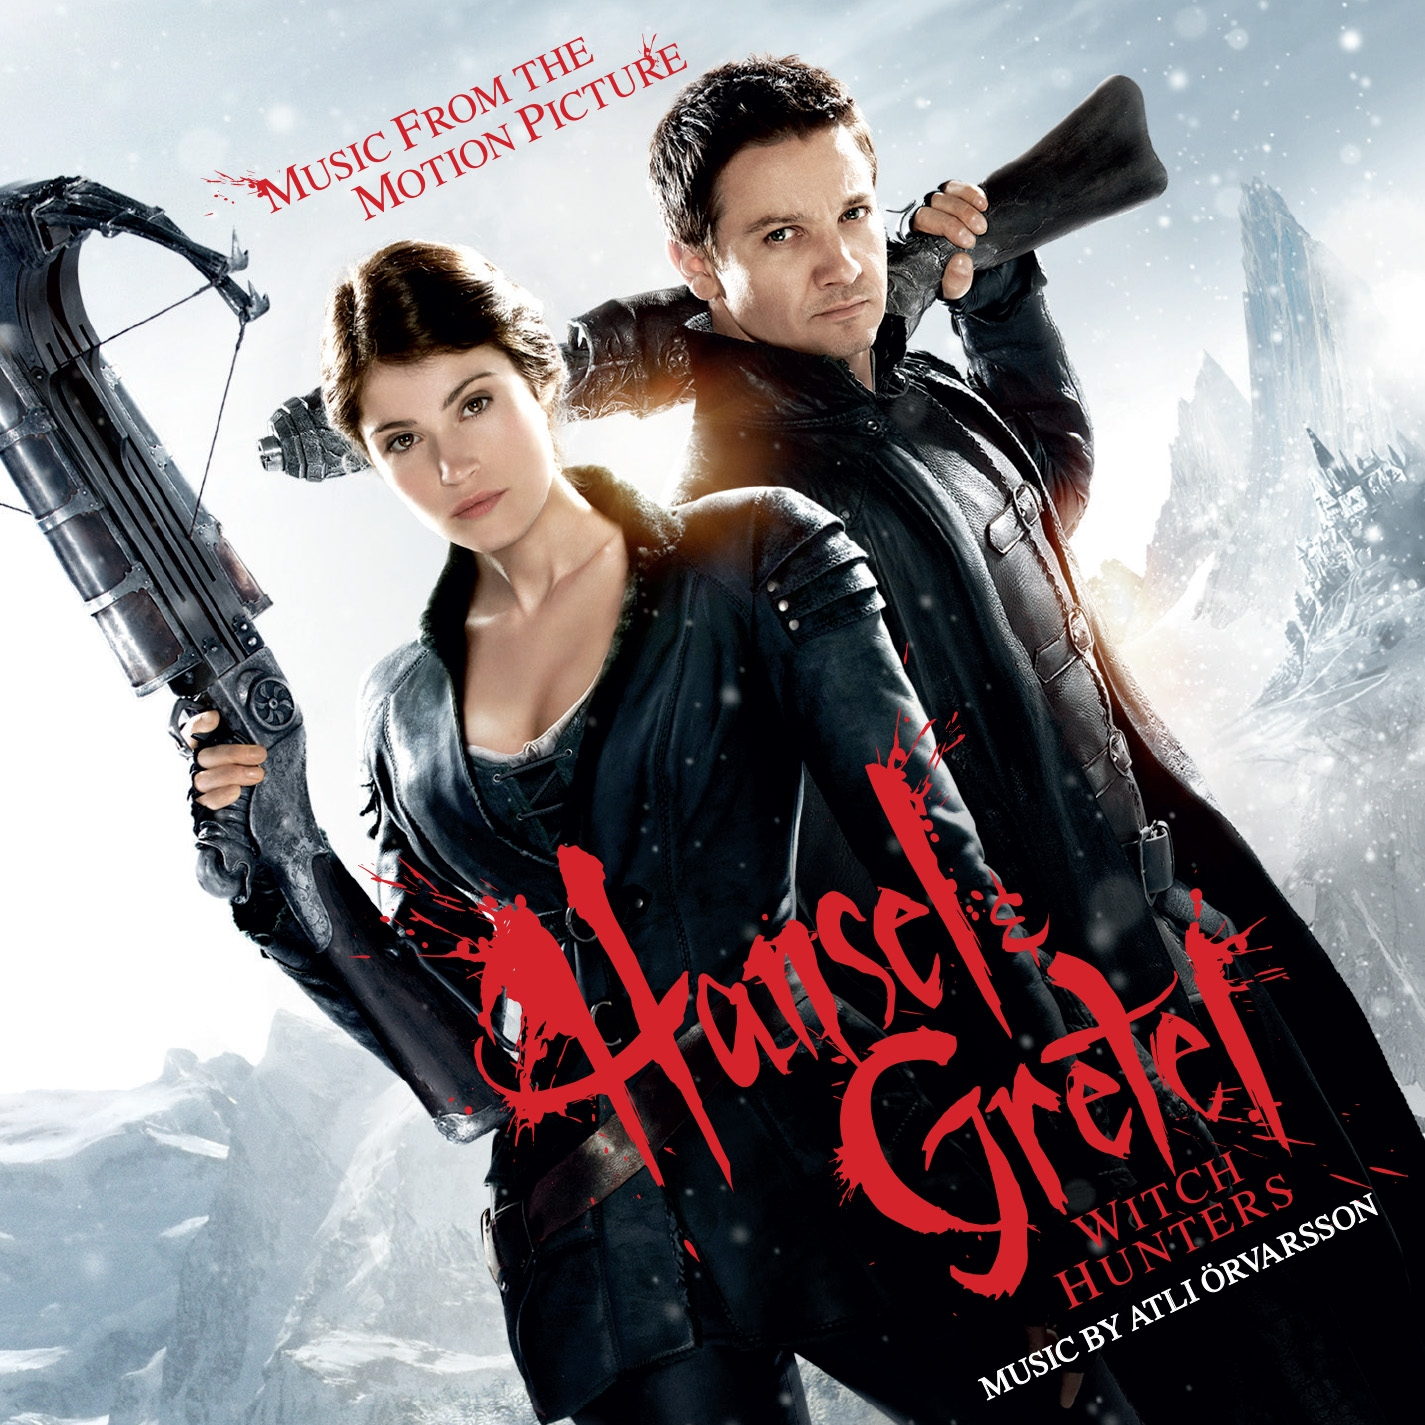 Hansel & Gretel_Witch Hunters